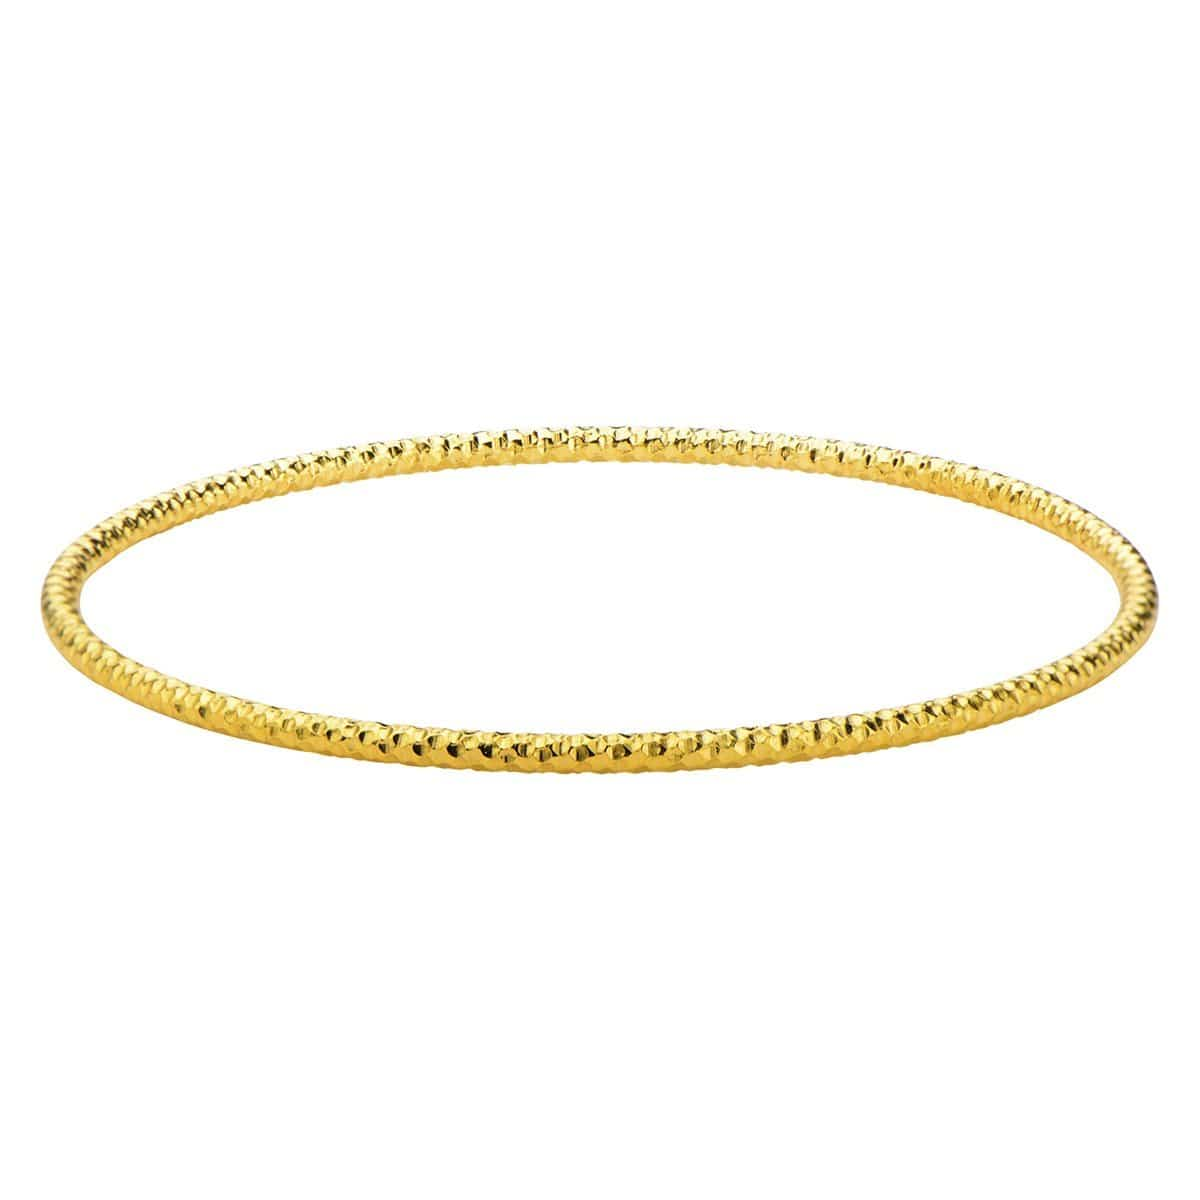 Gold Stainless Steel Thin Hammered Bangle